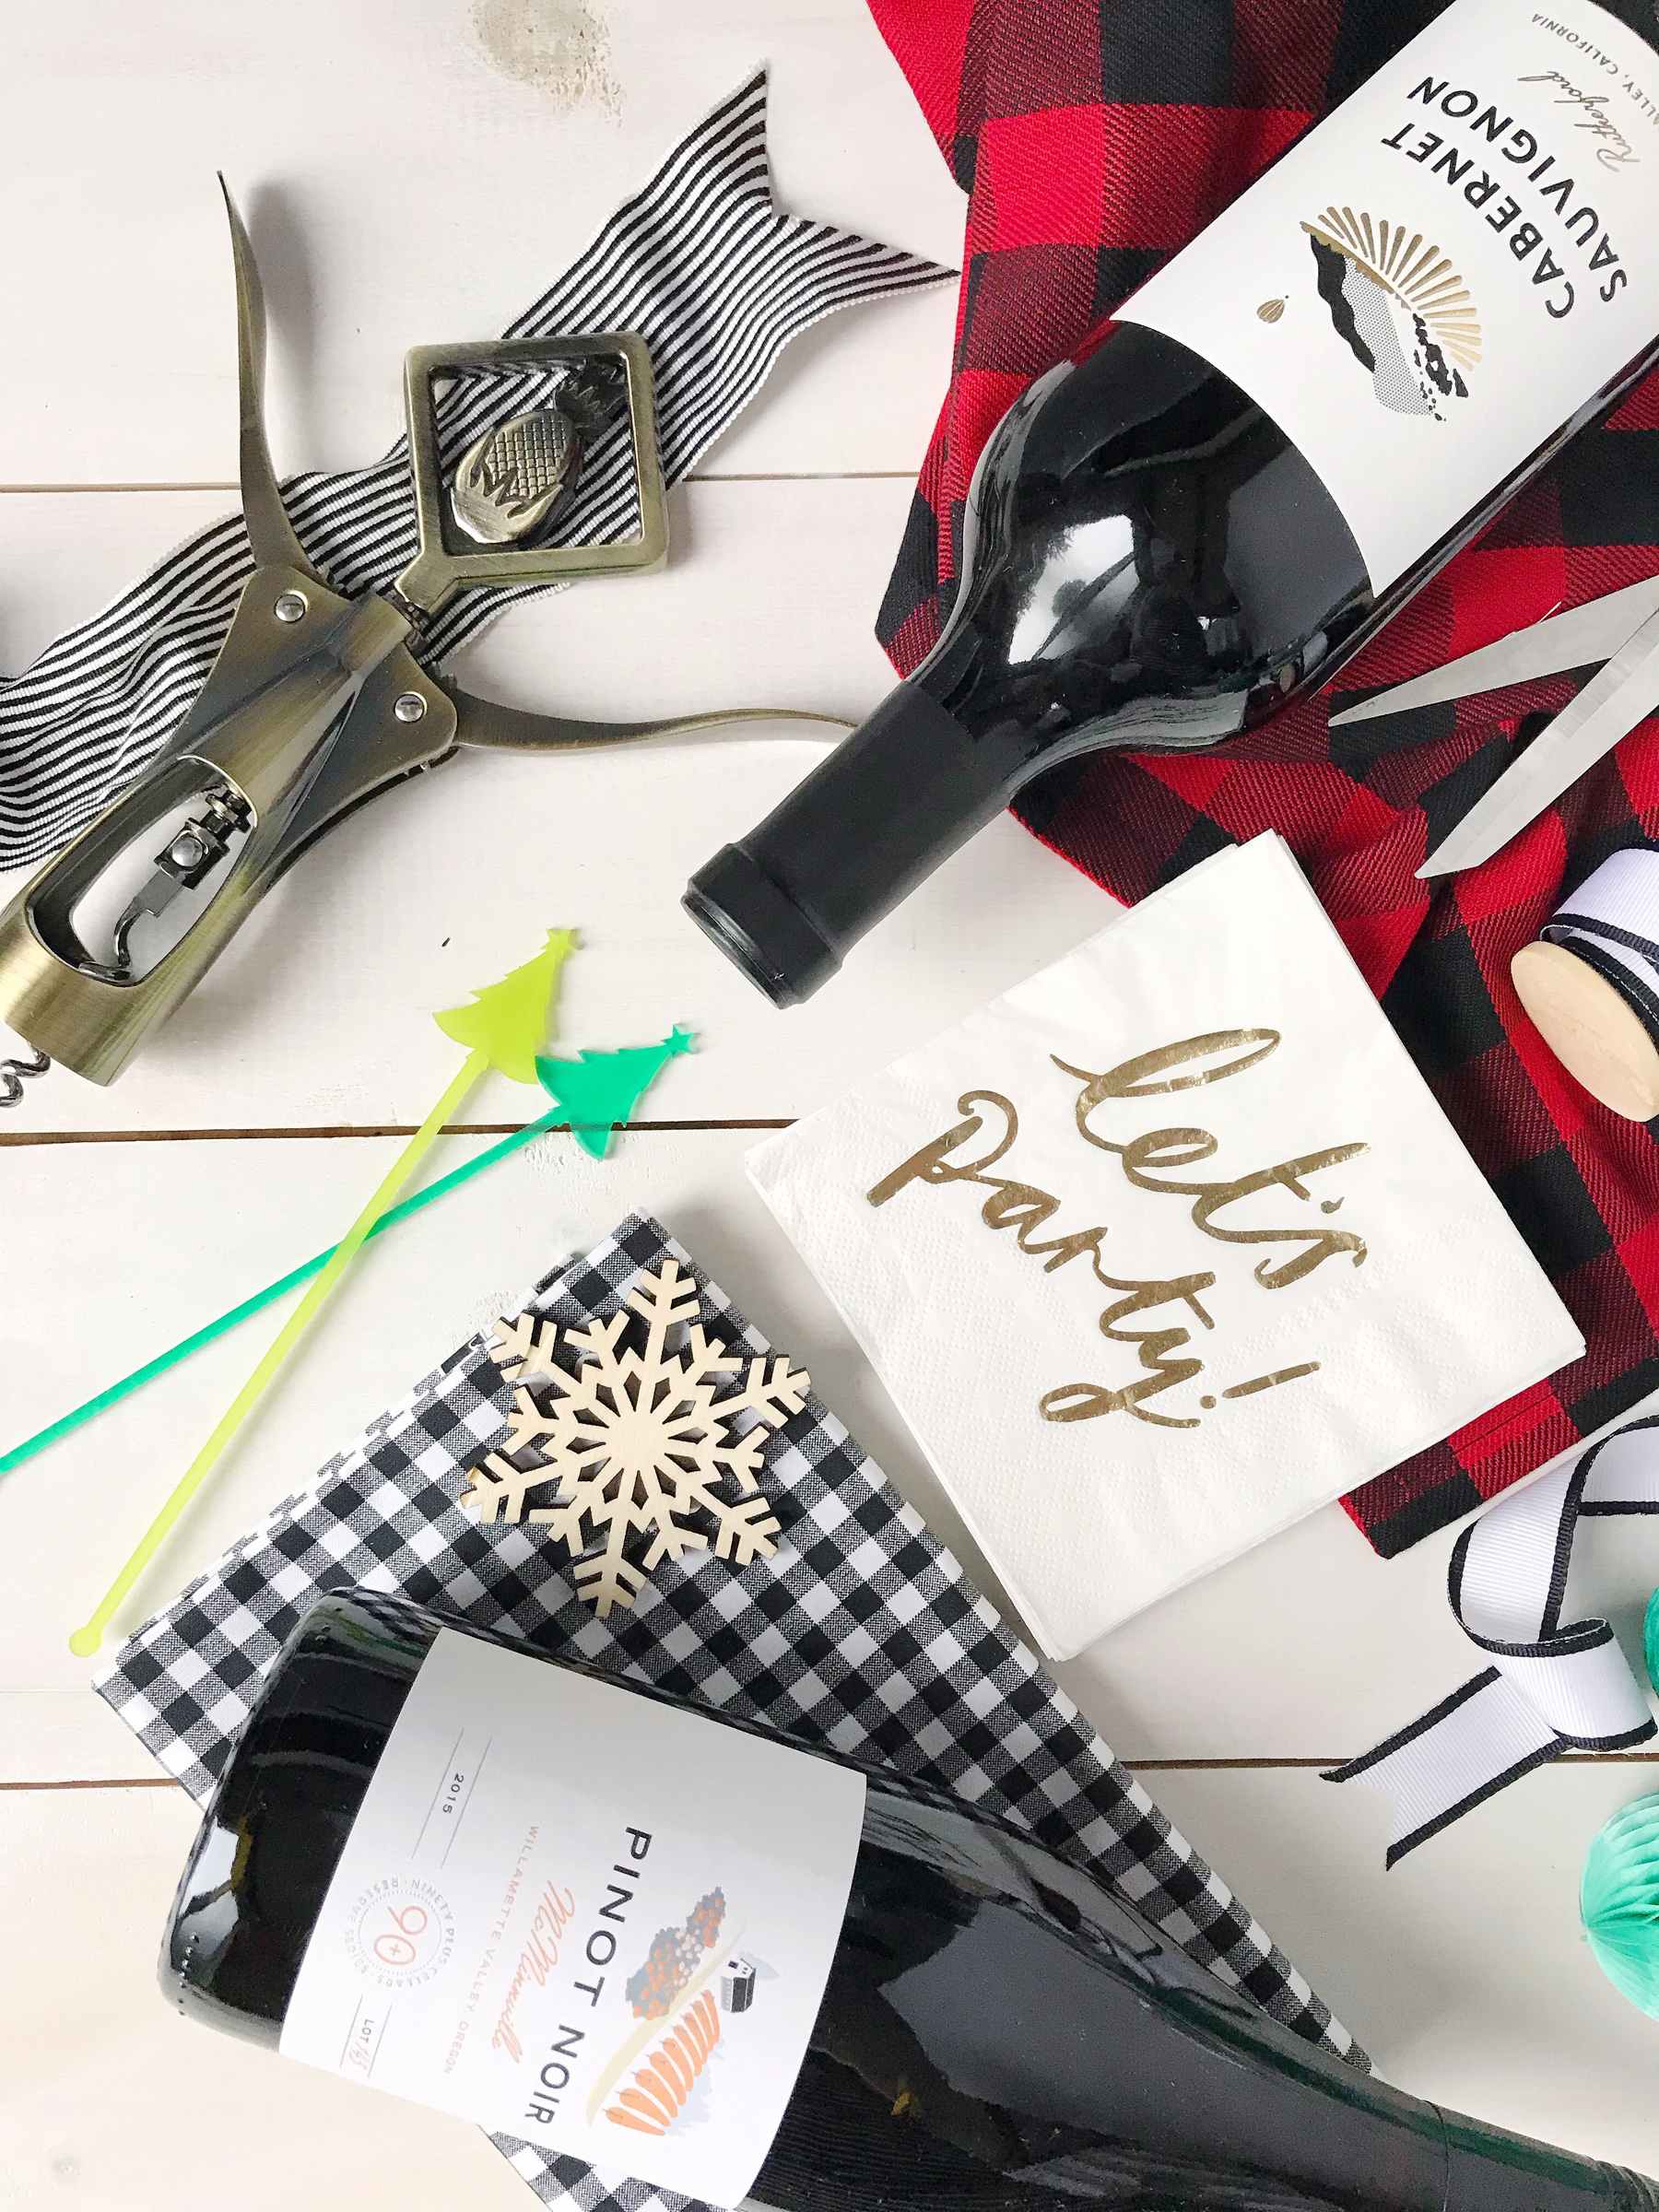 Now, tell me in the comments what the best hostess gift is you've ever received! I'm always delighted when a guest brings wine, the more the merrier.